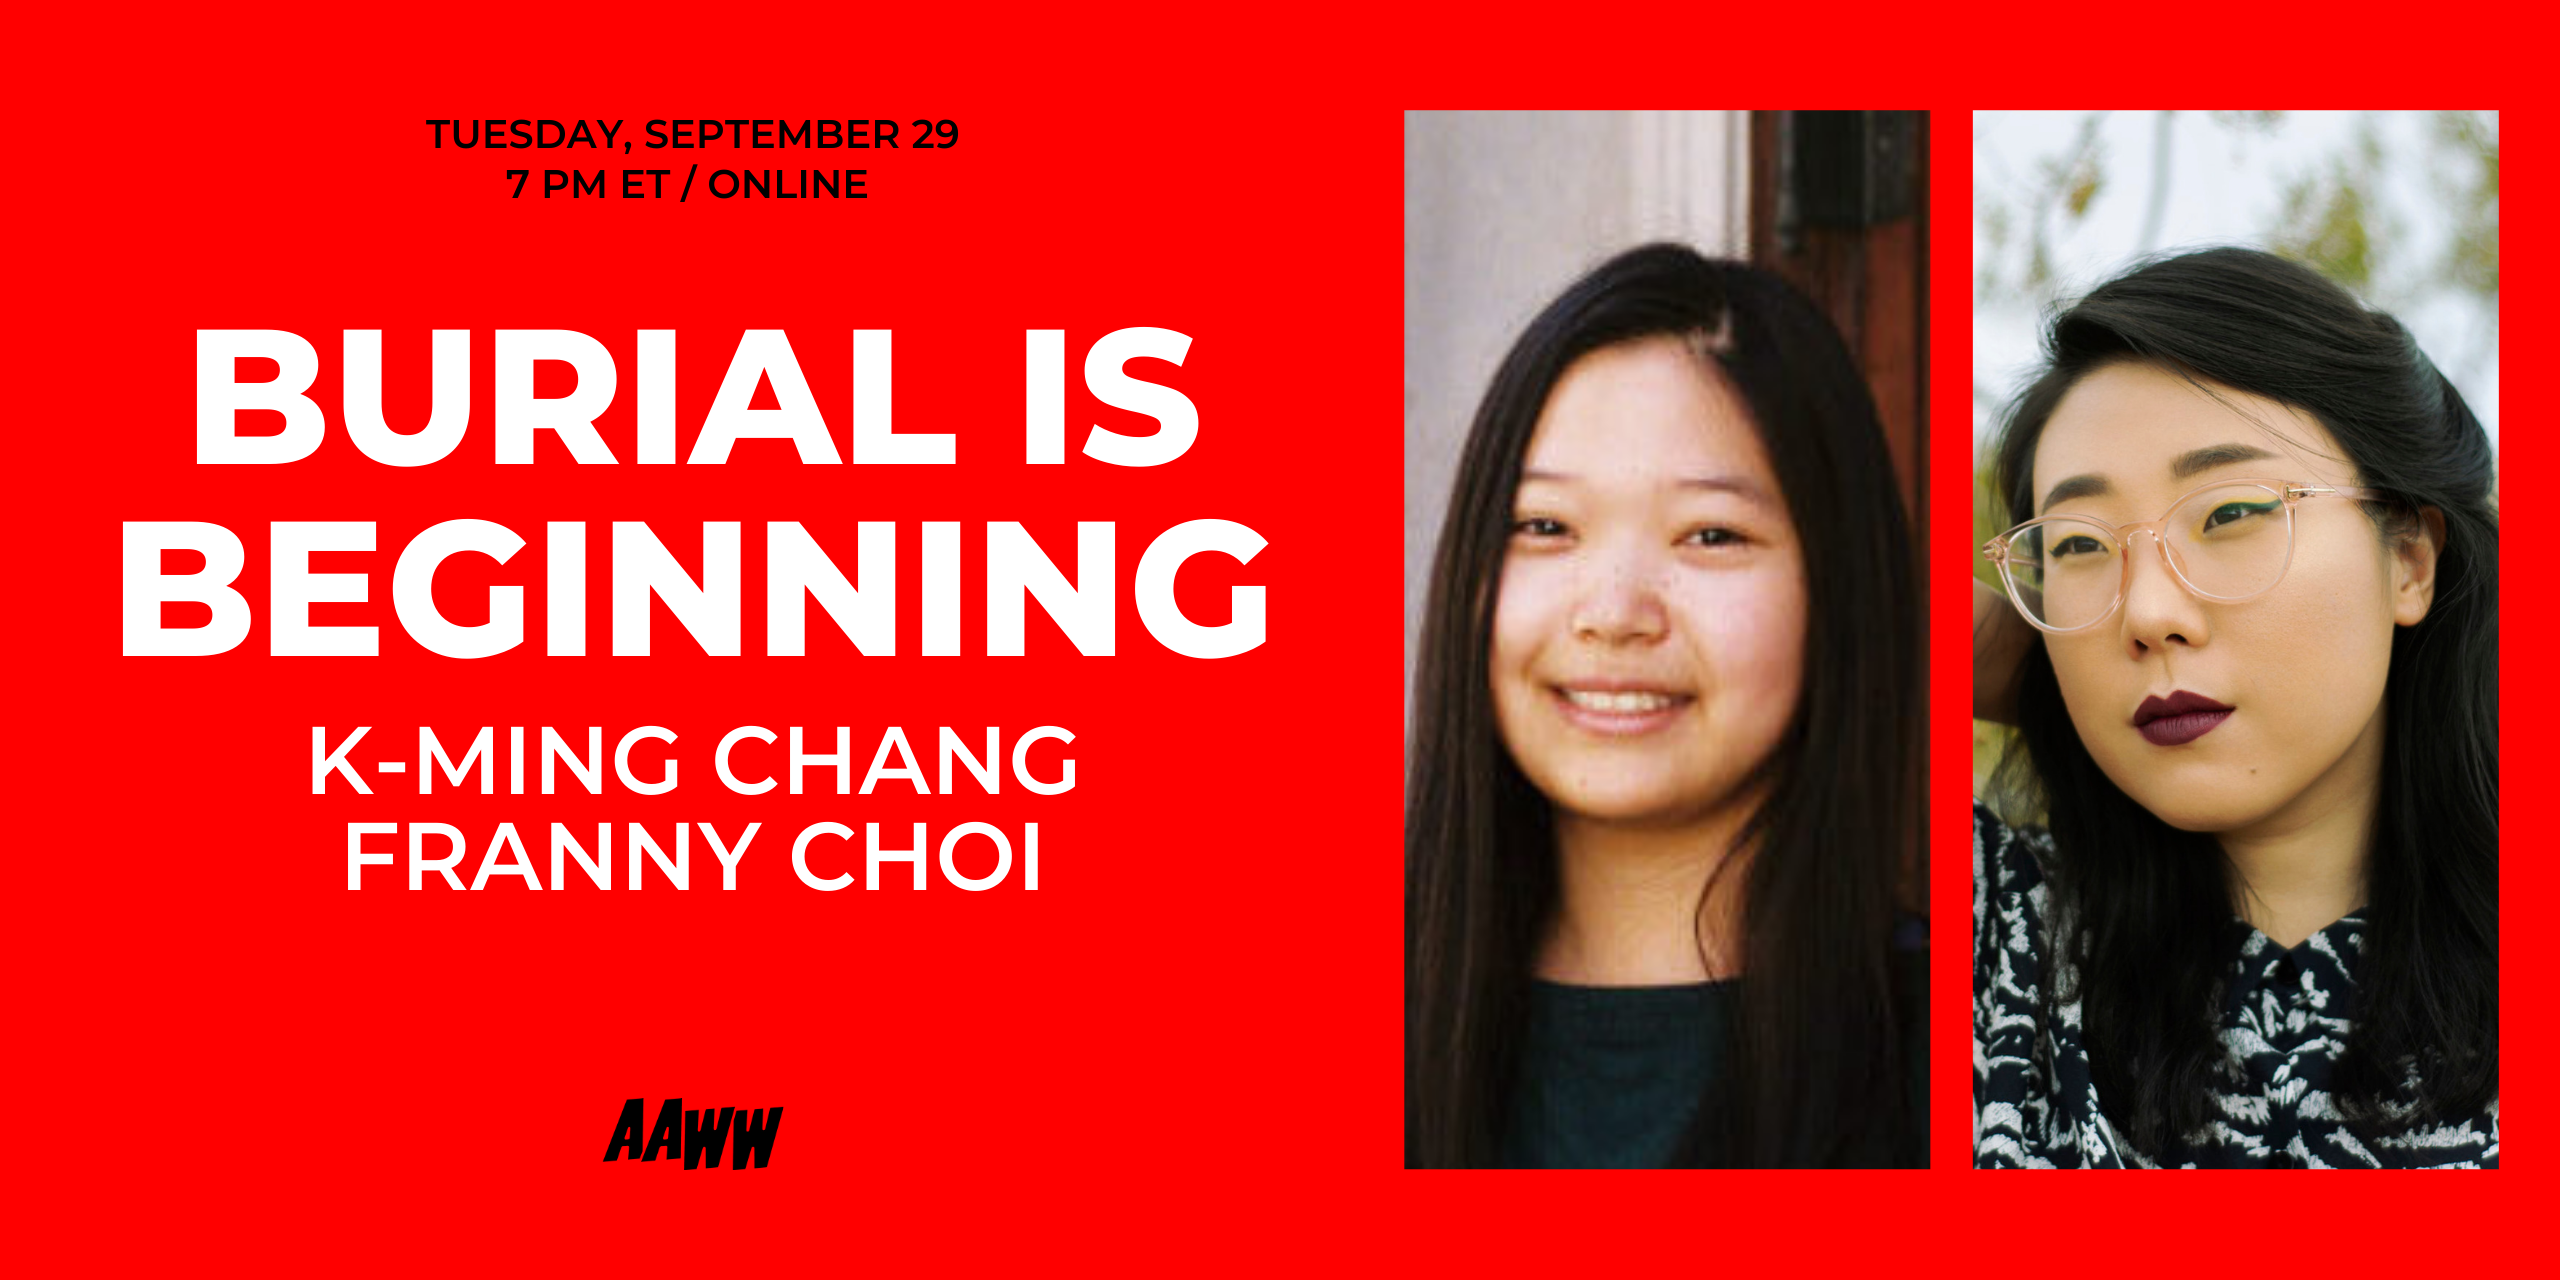 Burial is Beginning: K-Ming Chang and Franny Choi